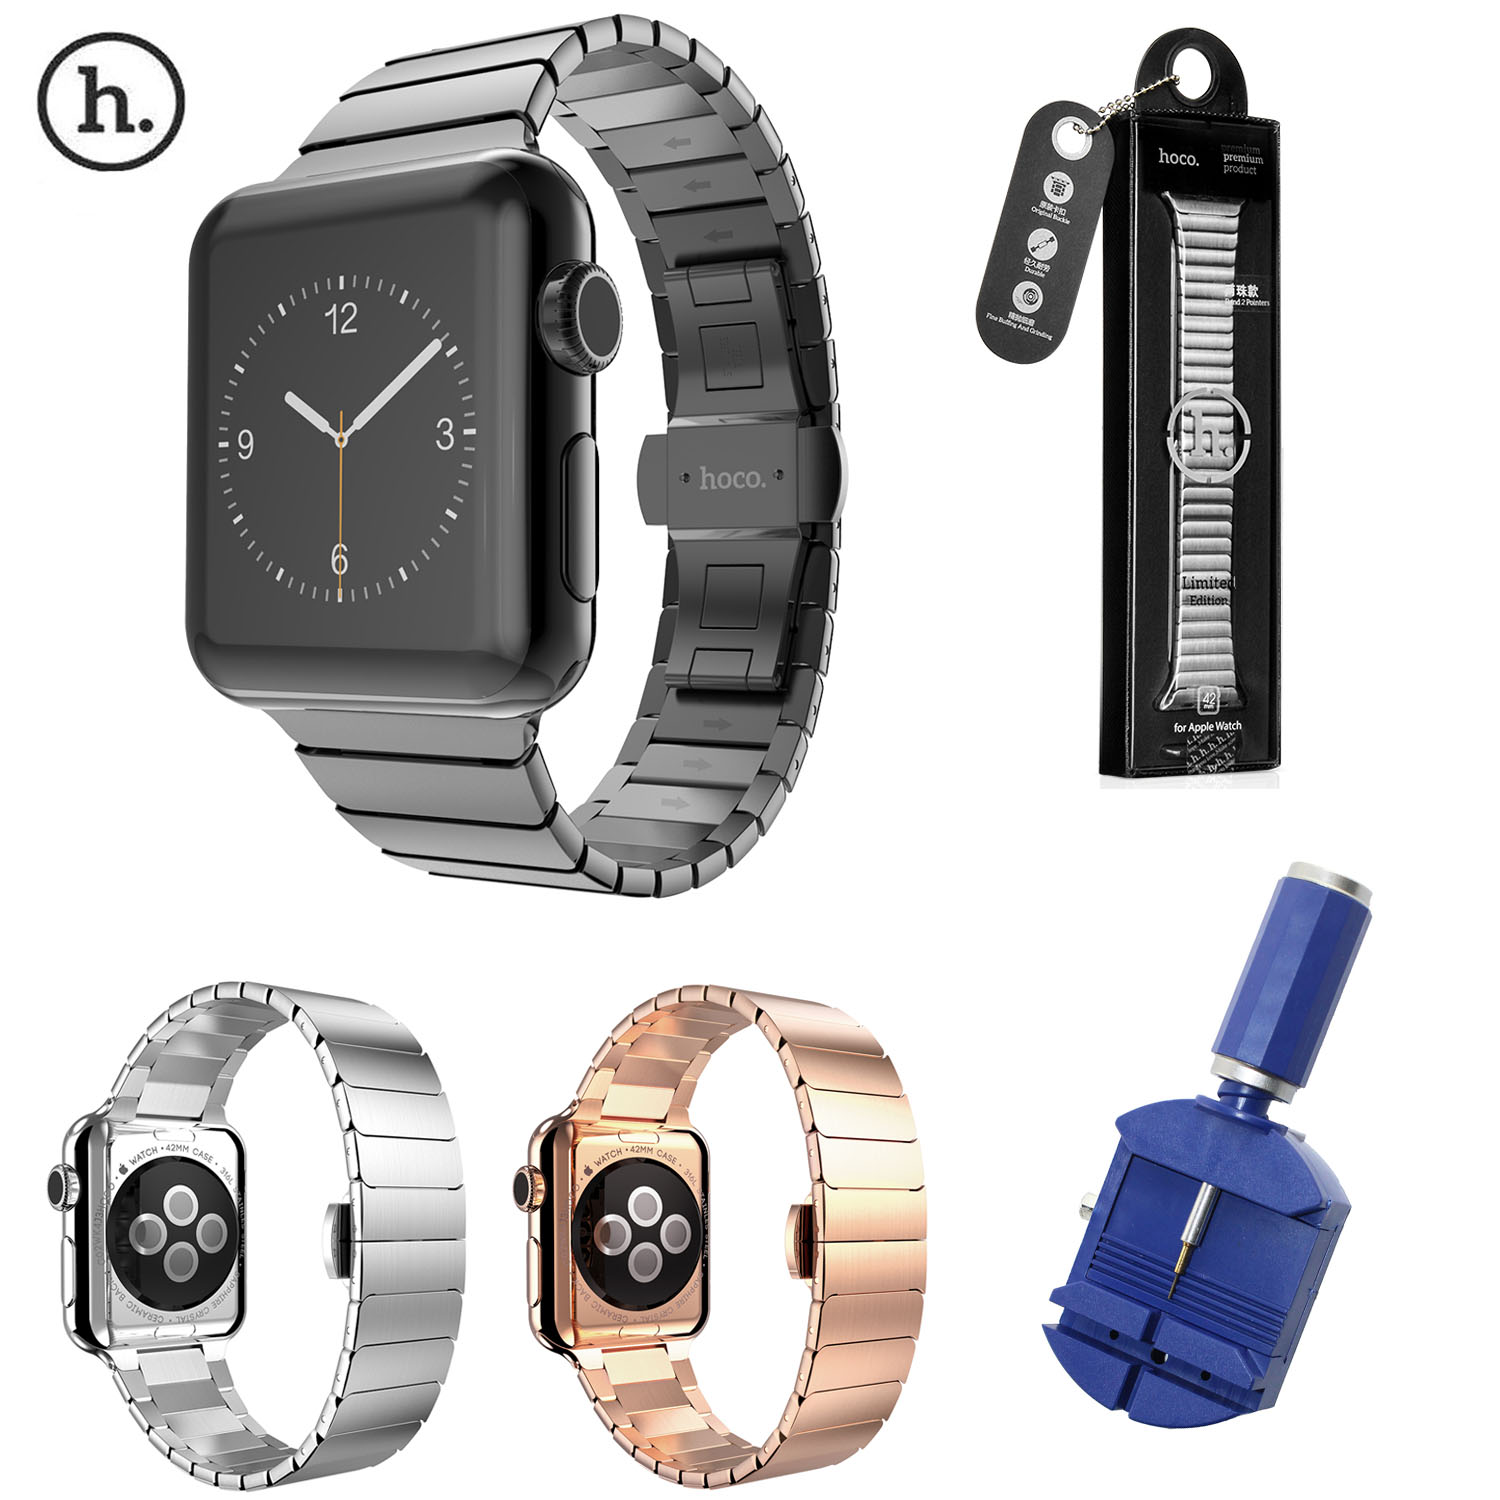 Original HOCO Watchband For Apple Watch Stainless Steel Link Band 42MM Butterfly Buckle Strap For iWatch Series 1/2/3 Bracelet eastar milanese loop stainless steel watchband for apple watch series 3 2 1 double buckle 42 mm 38 mm strap for iwatch band